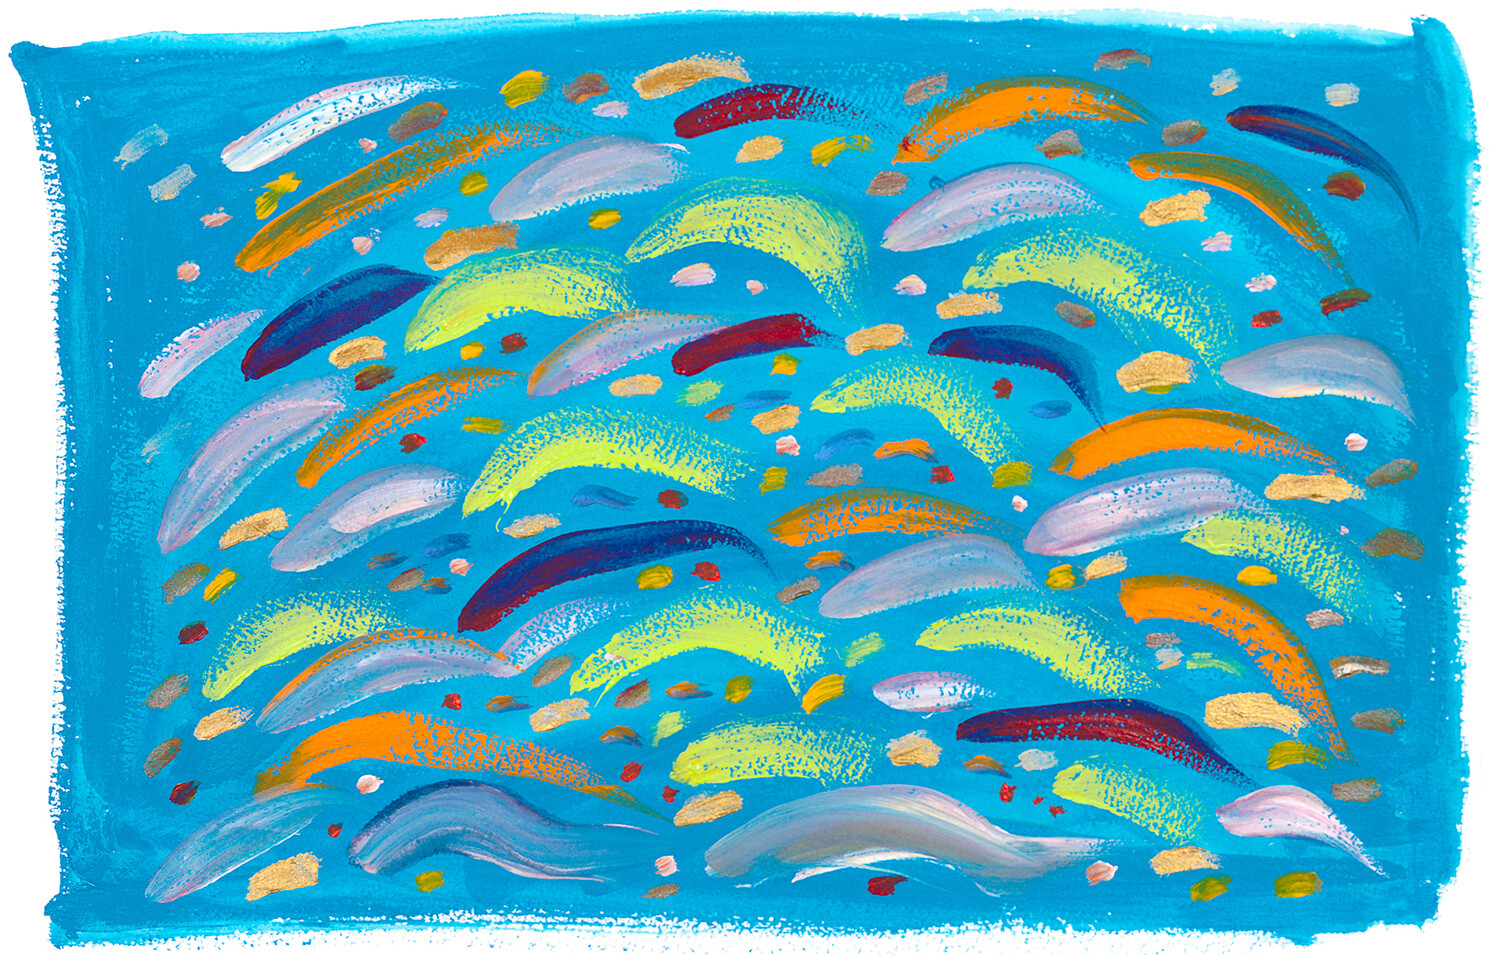 IN THE SWIM; LIMITED EDITION PRINT